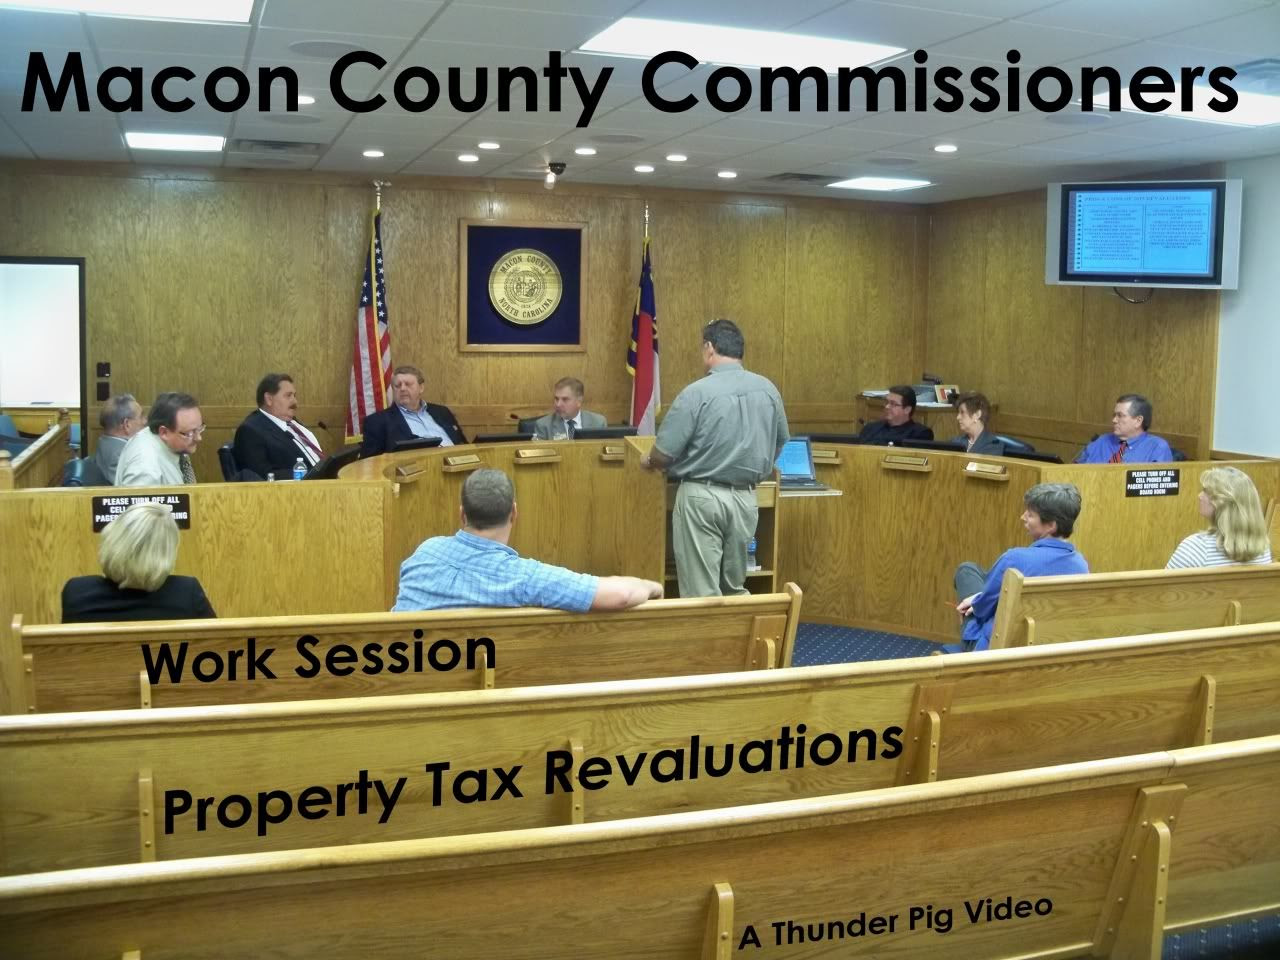 Macon County Commissioners Work Session for Sept 22  Photo and Graphics by Bobby Coggins